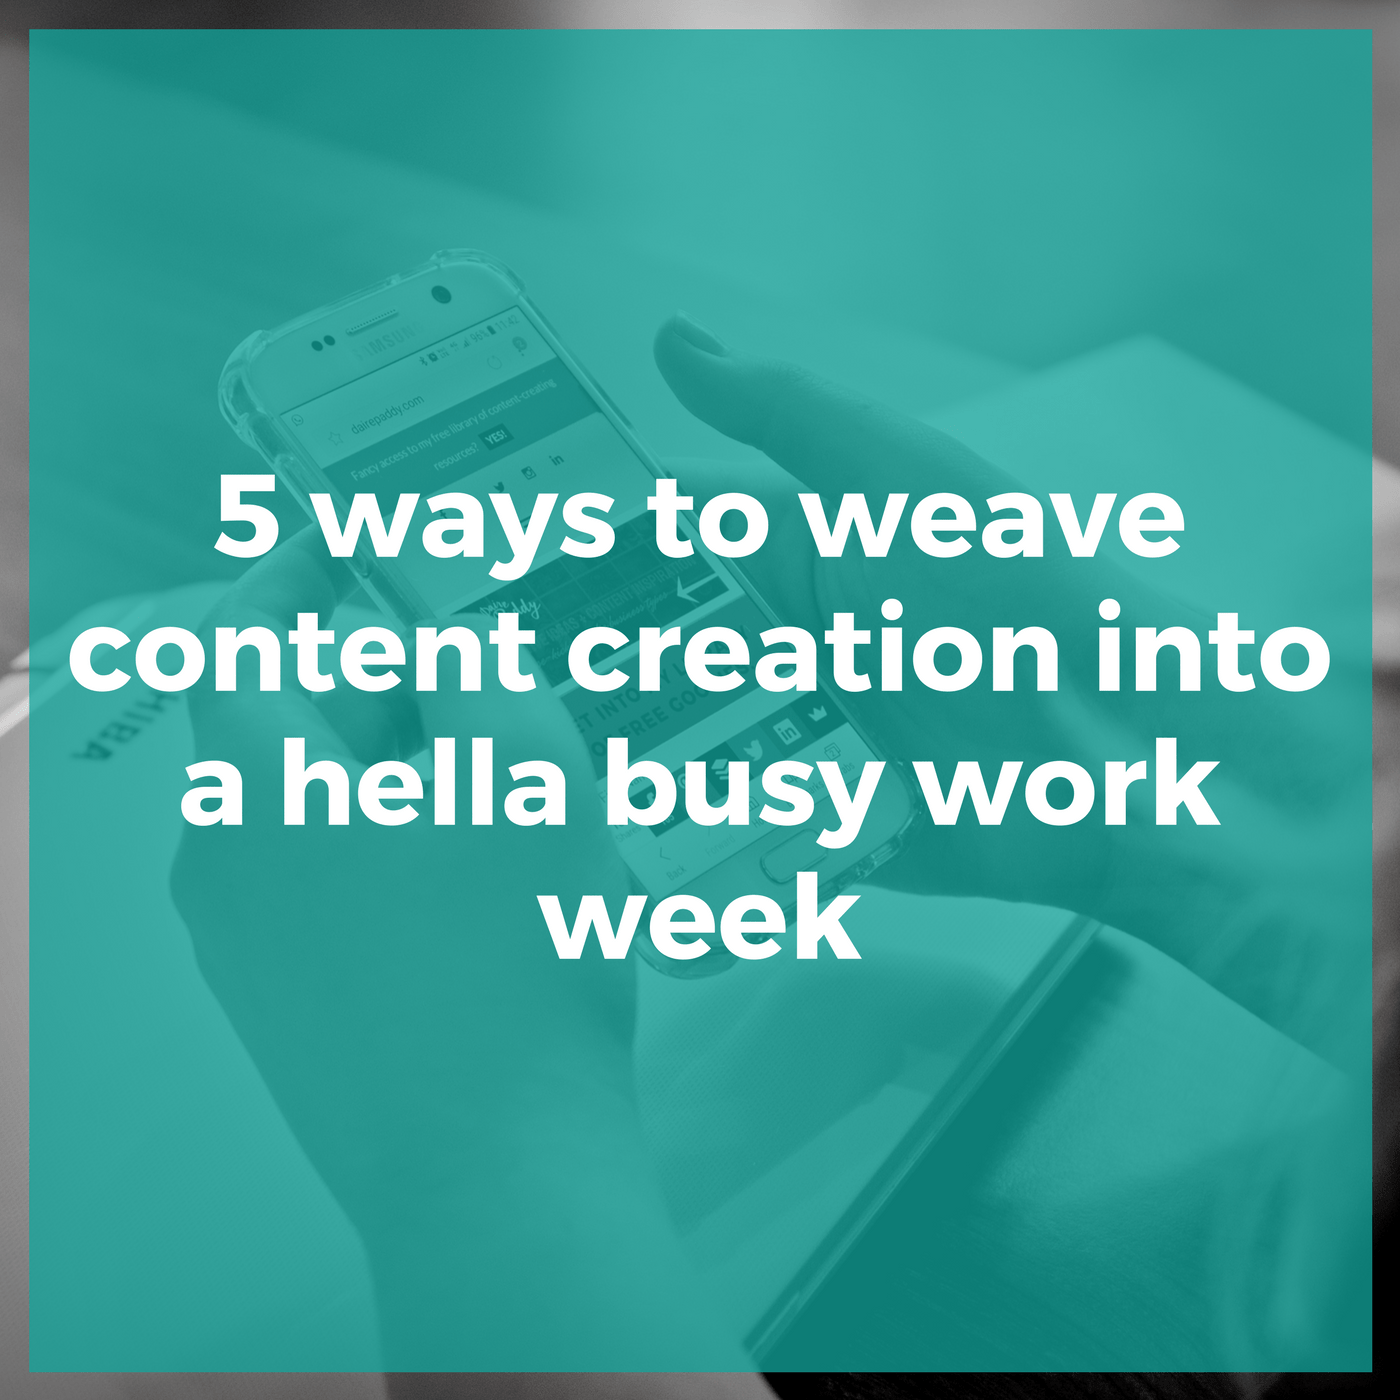 5 ways to weave content creation into a hella busy work week